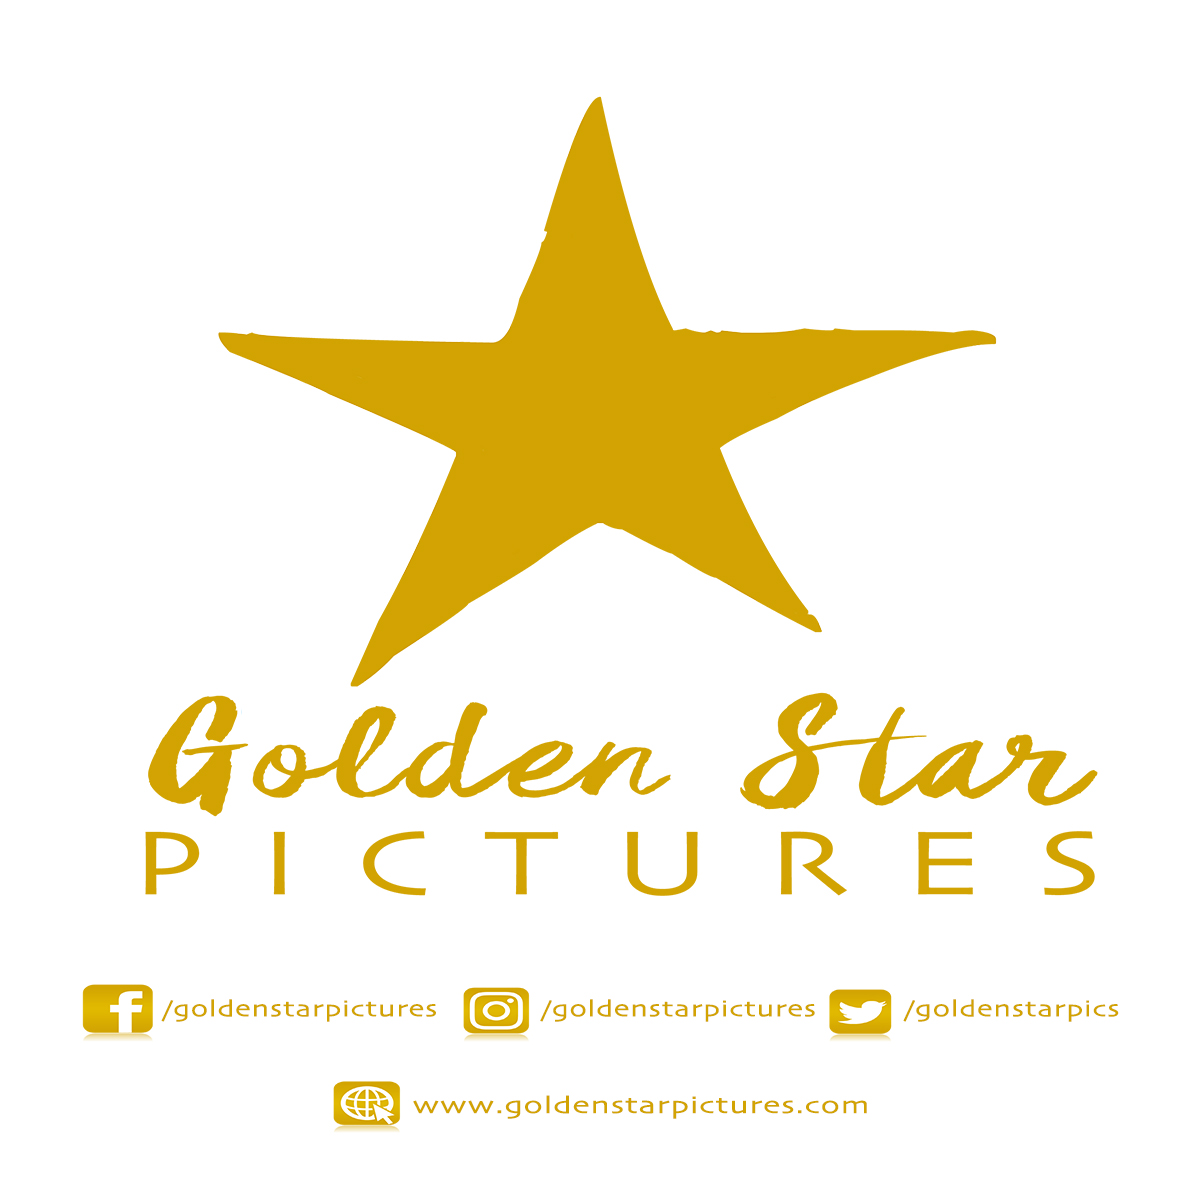 Golden Star Pictures logo with icons.jpg